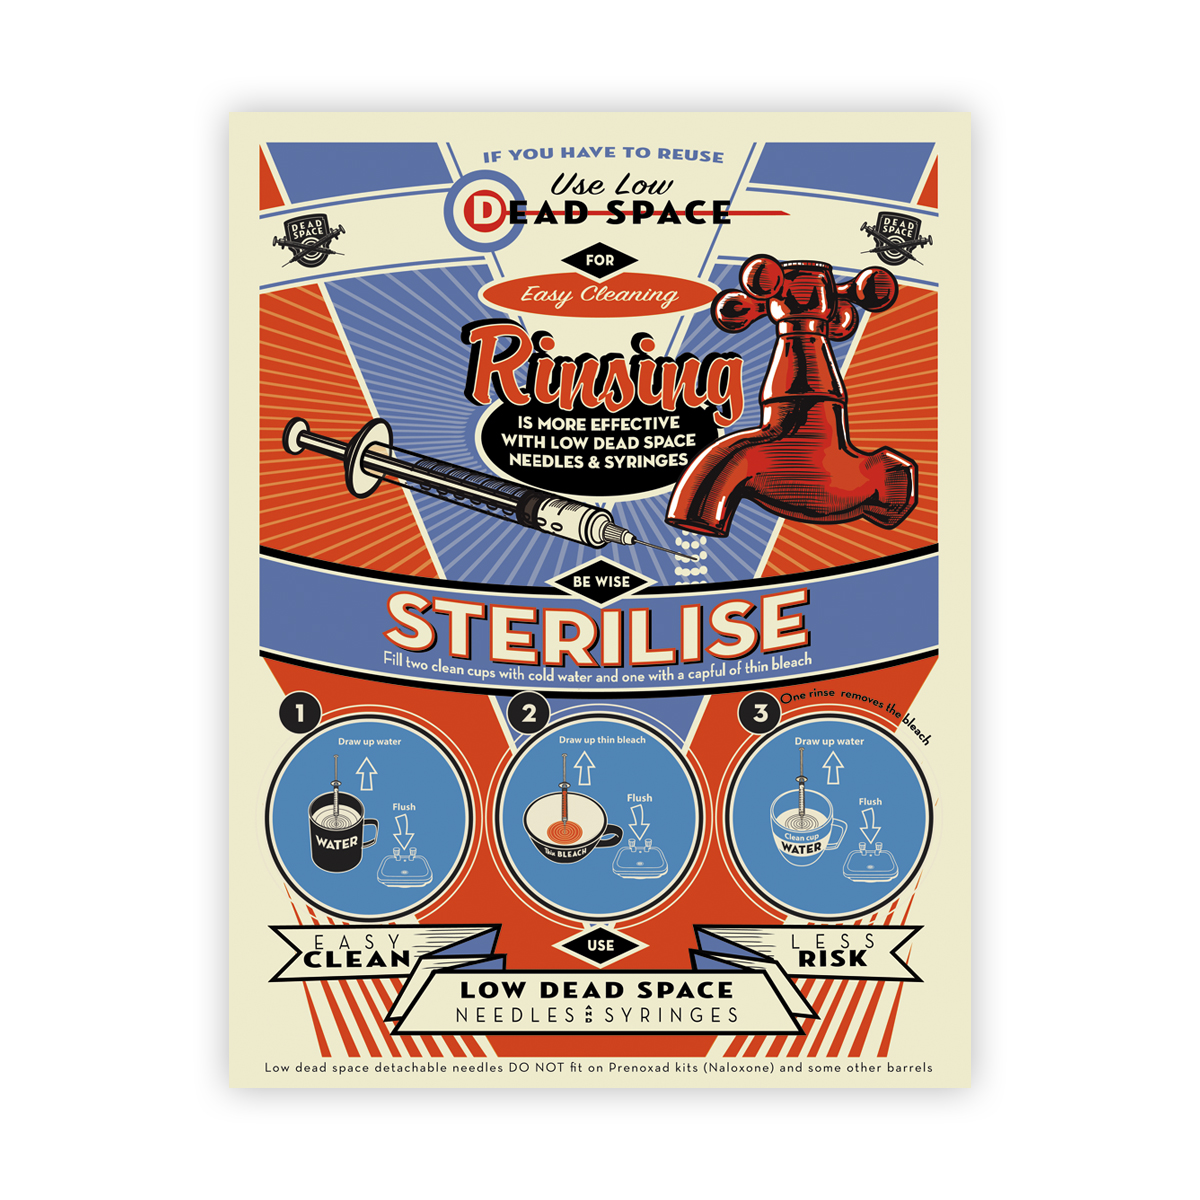 Be wise, sterilise poster